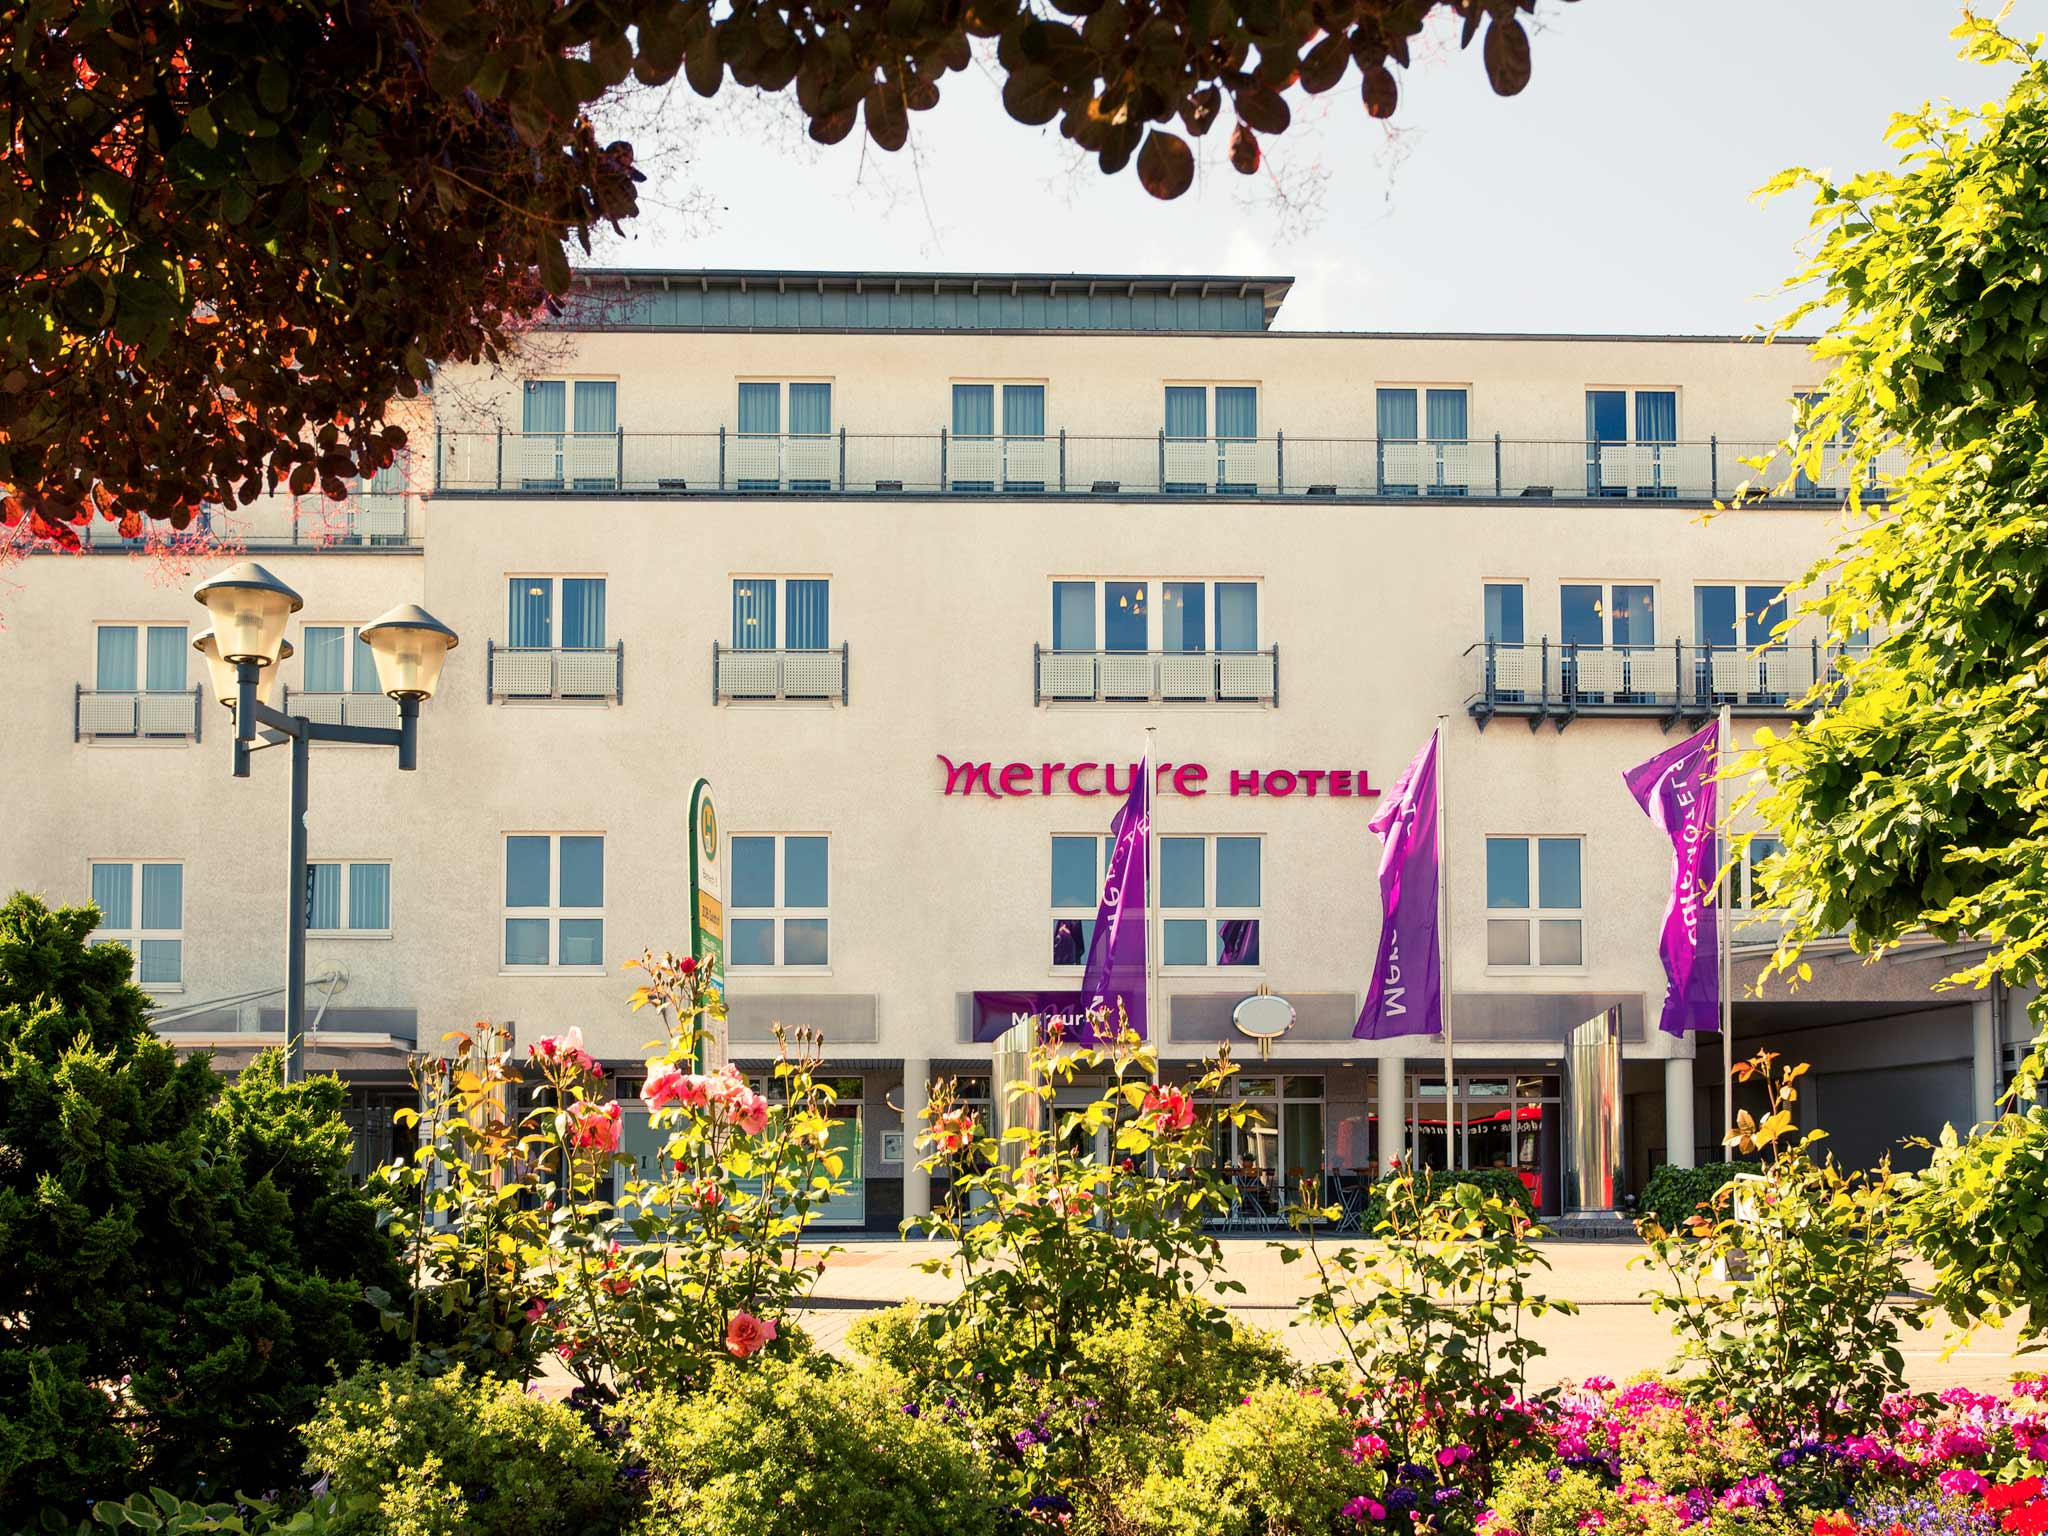 Mercure Hotel Bad Oeynhausen City Exterior view